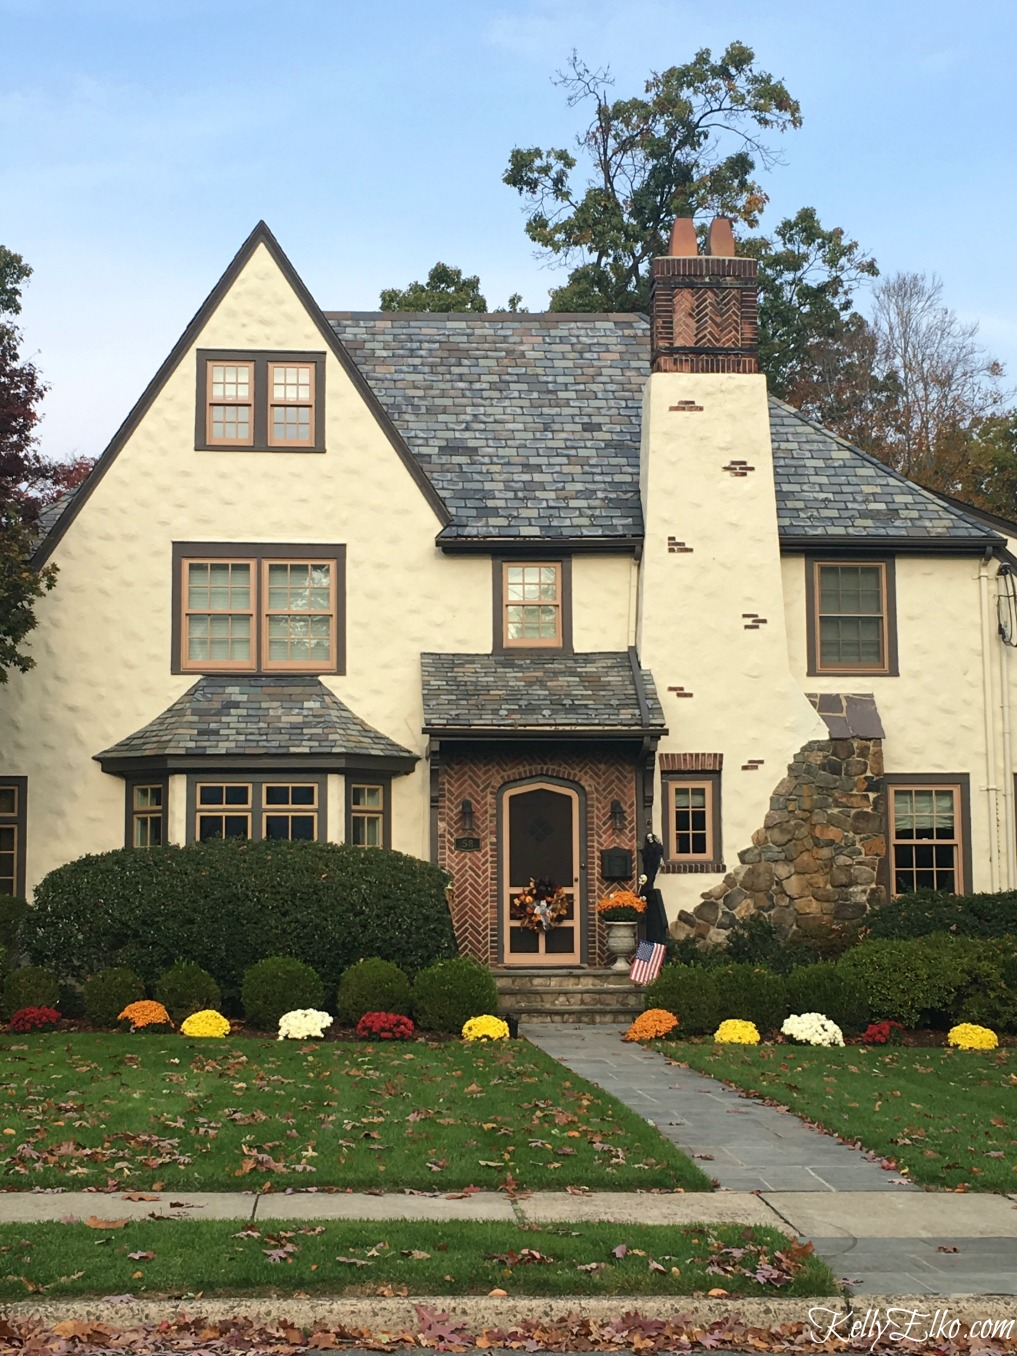 Charming old Tudor home - see more fall homes with curb appeal kellyelko.com